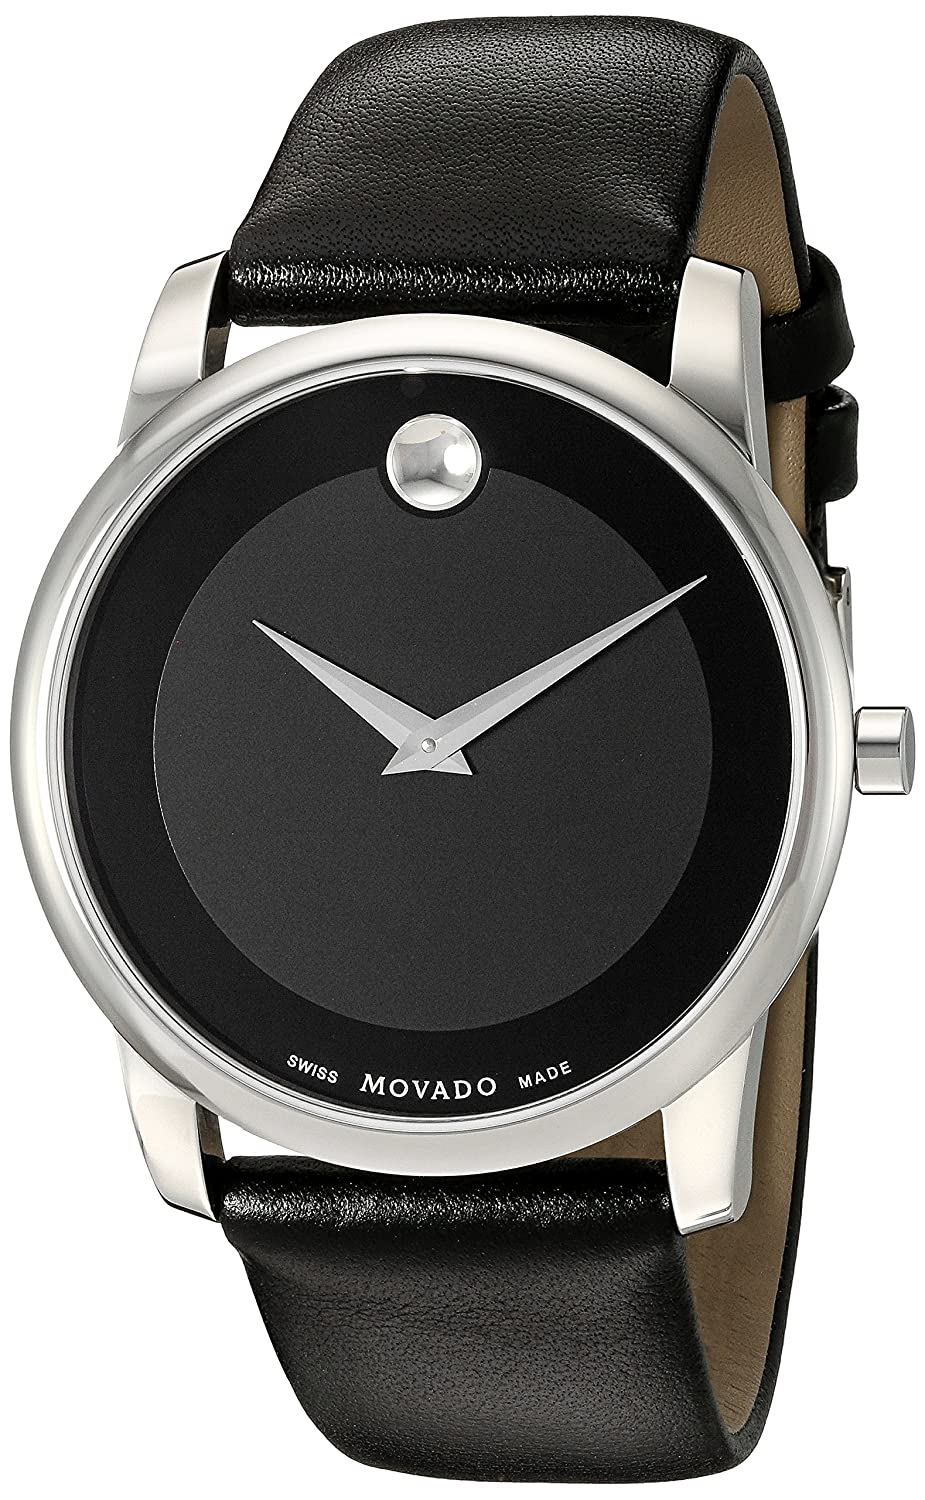 b7614abc0 Amazon.com: Movado Men's 0606502 Museum Stainless Steel Watch with Black  Leather Band: Movado: Watches